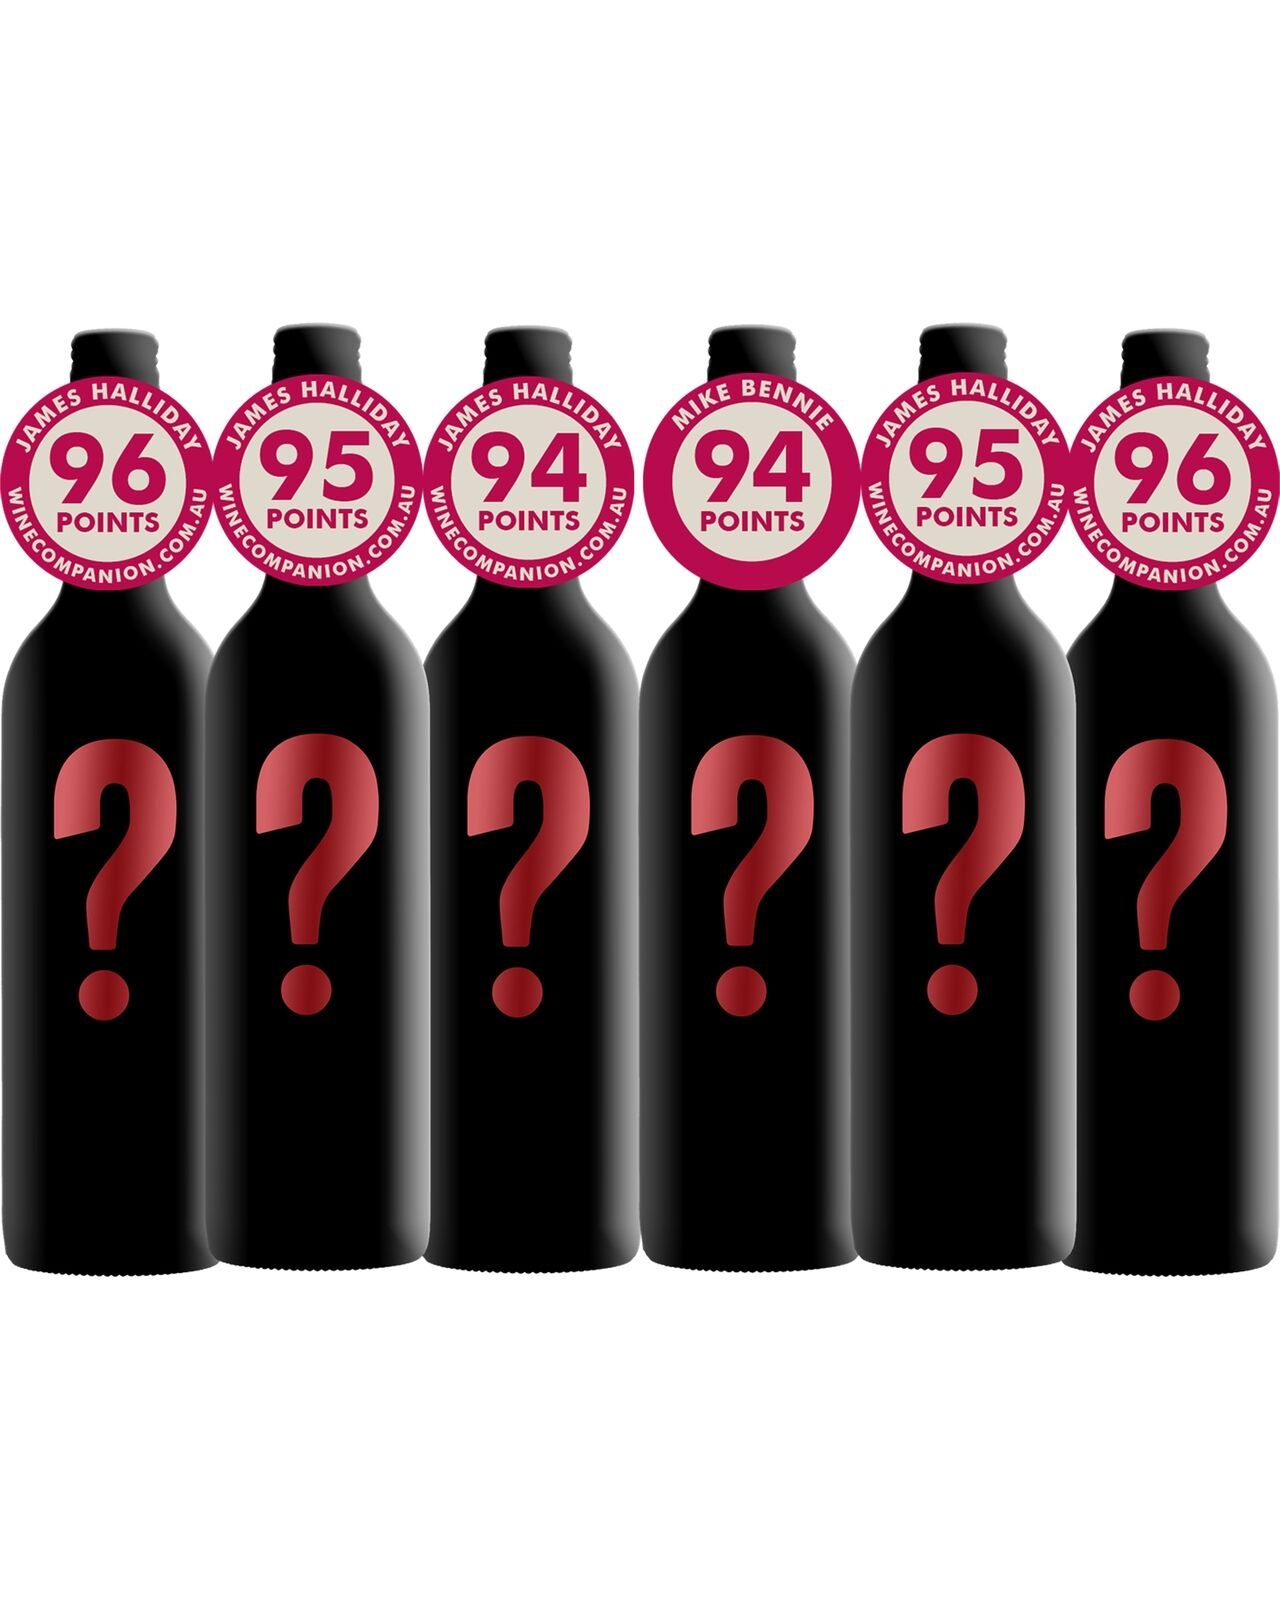 Mystery Premium Mixed Red Pack bottle Dry Red Wine 750mL